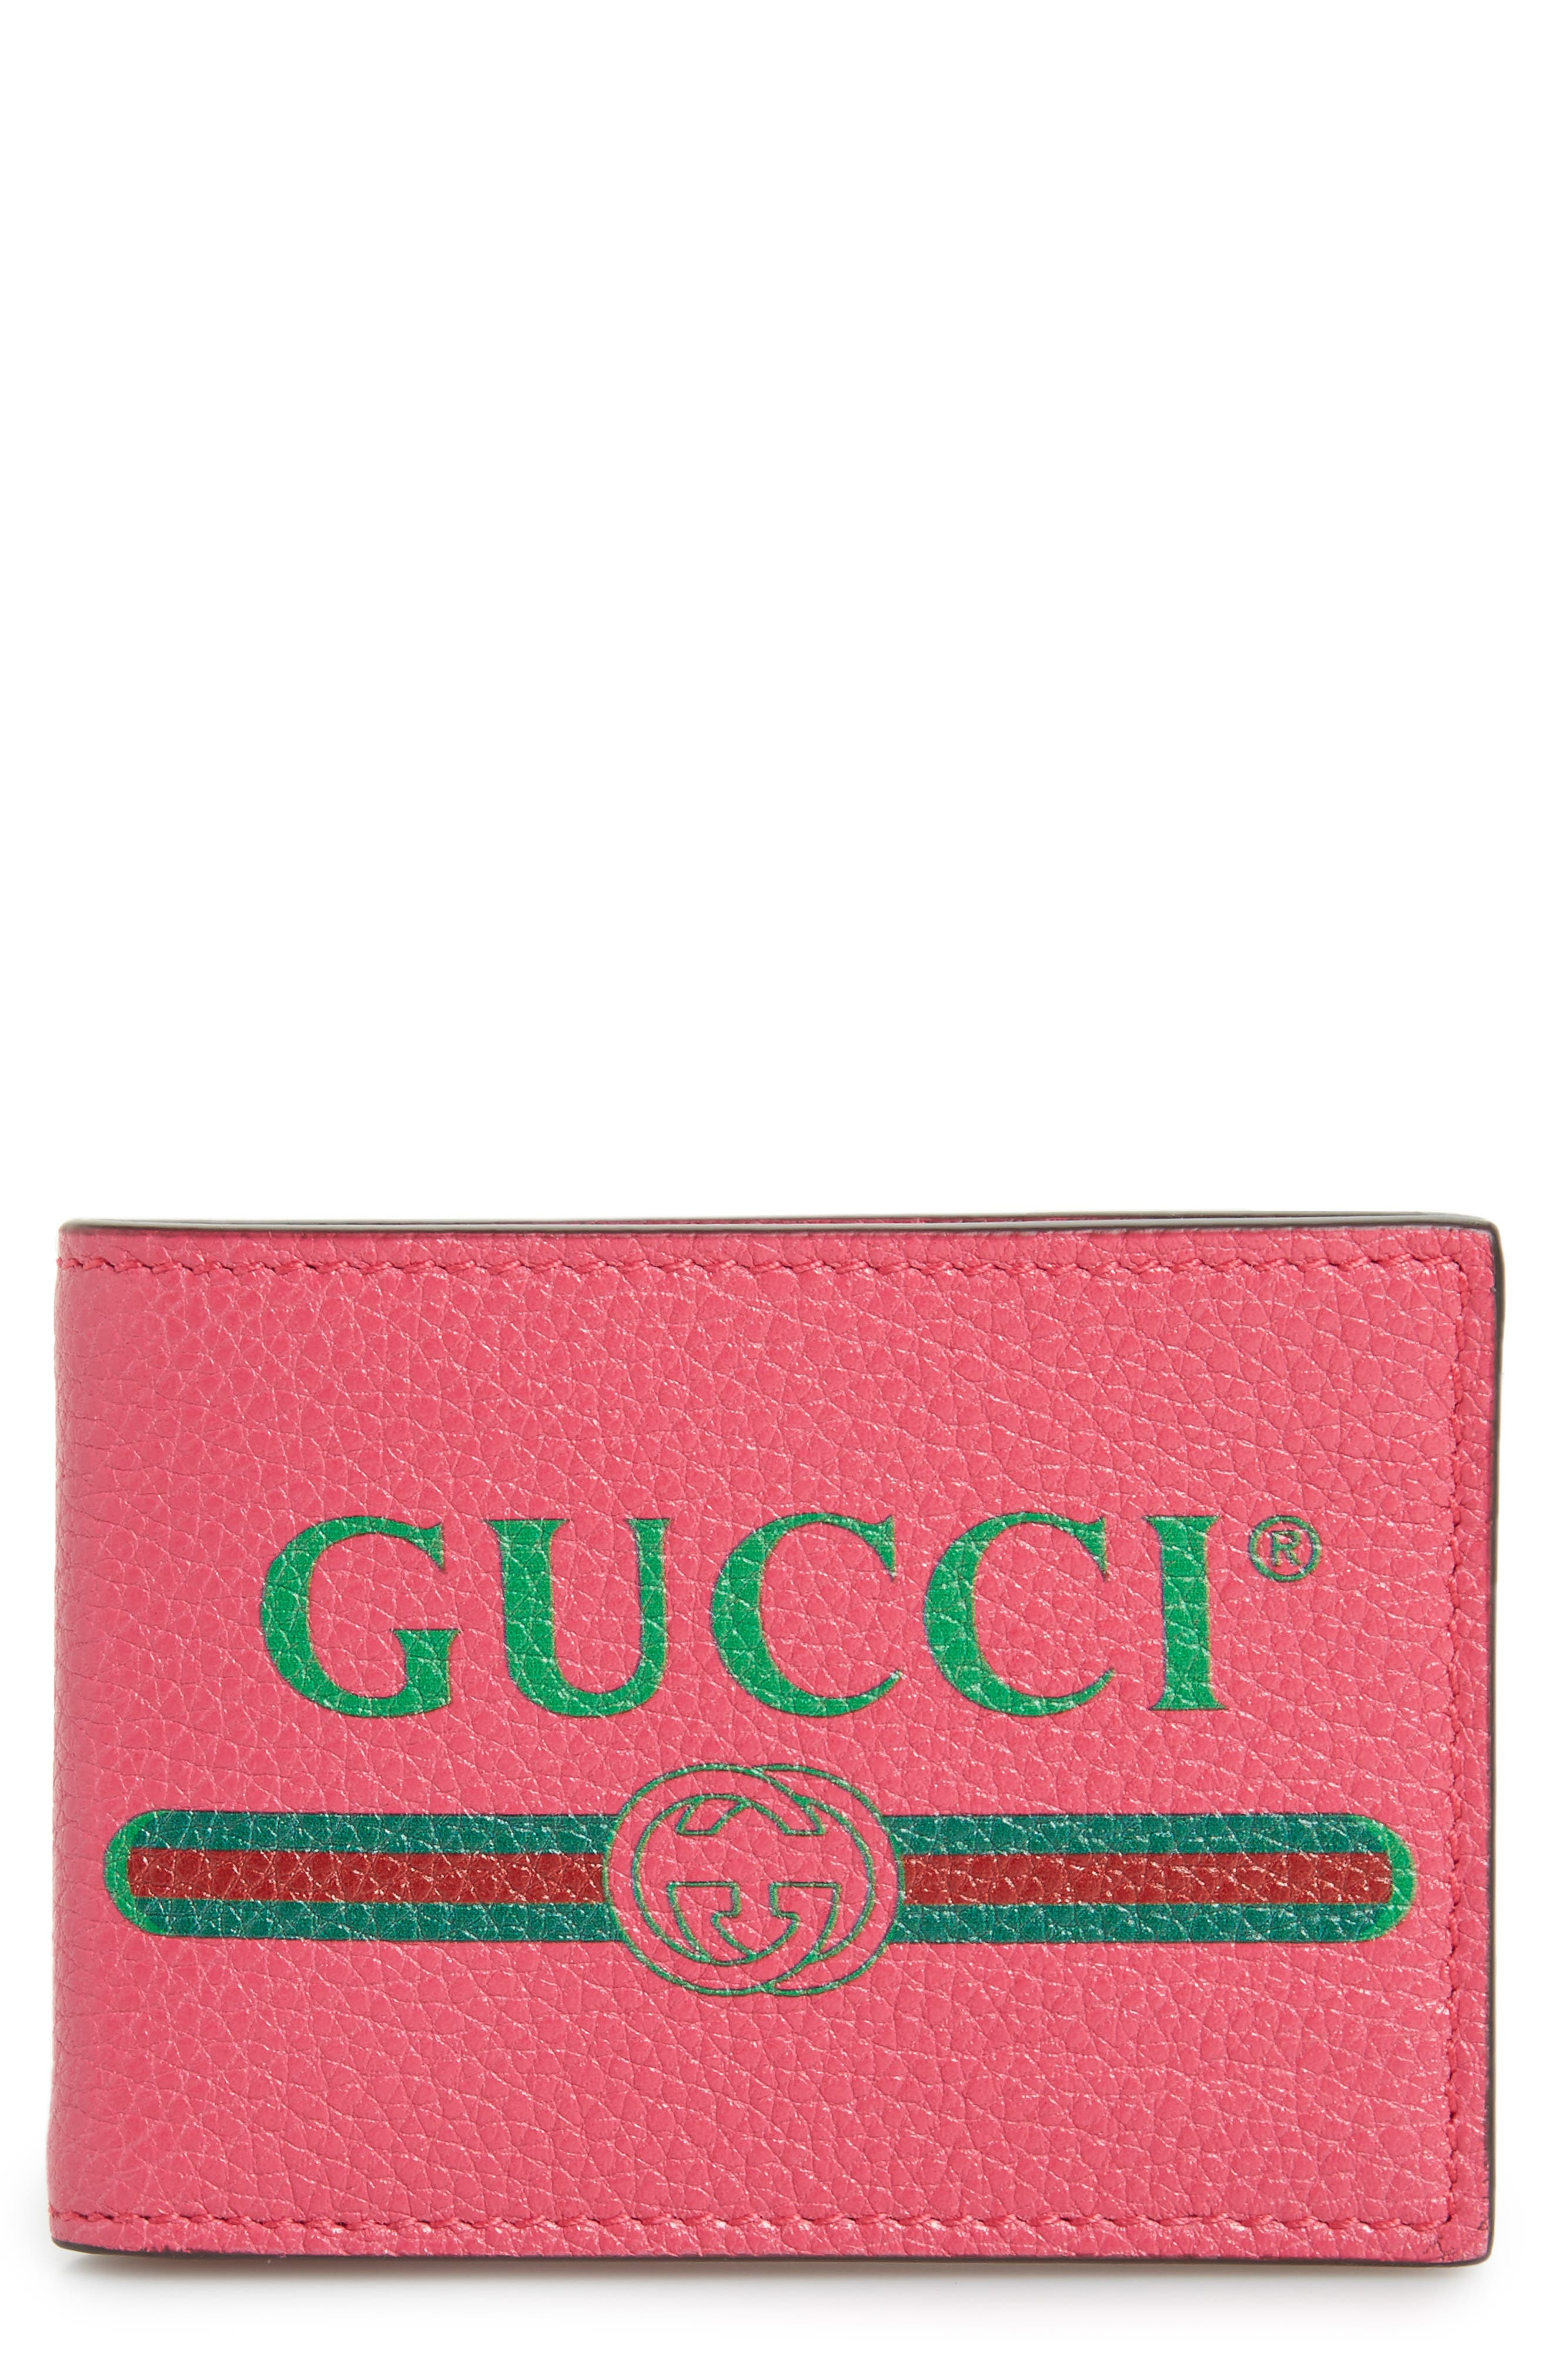 Bifold Leather Wallet,                         Main,                         color, Pink